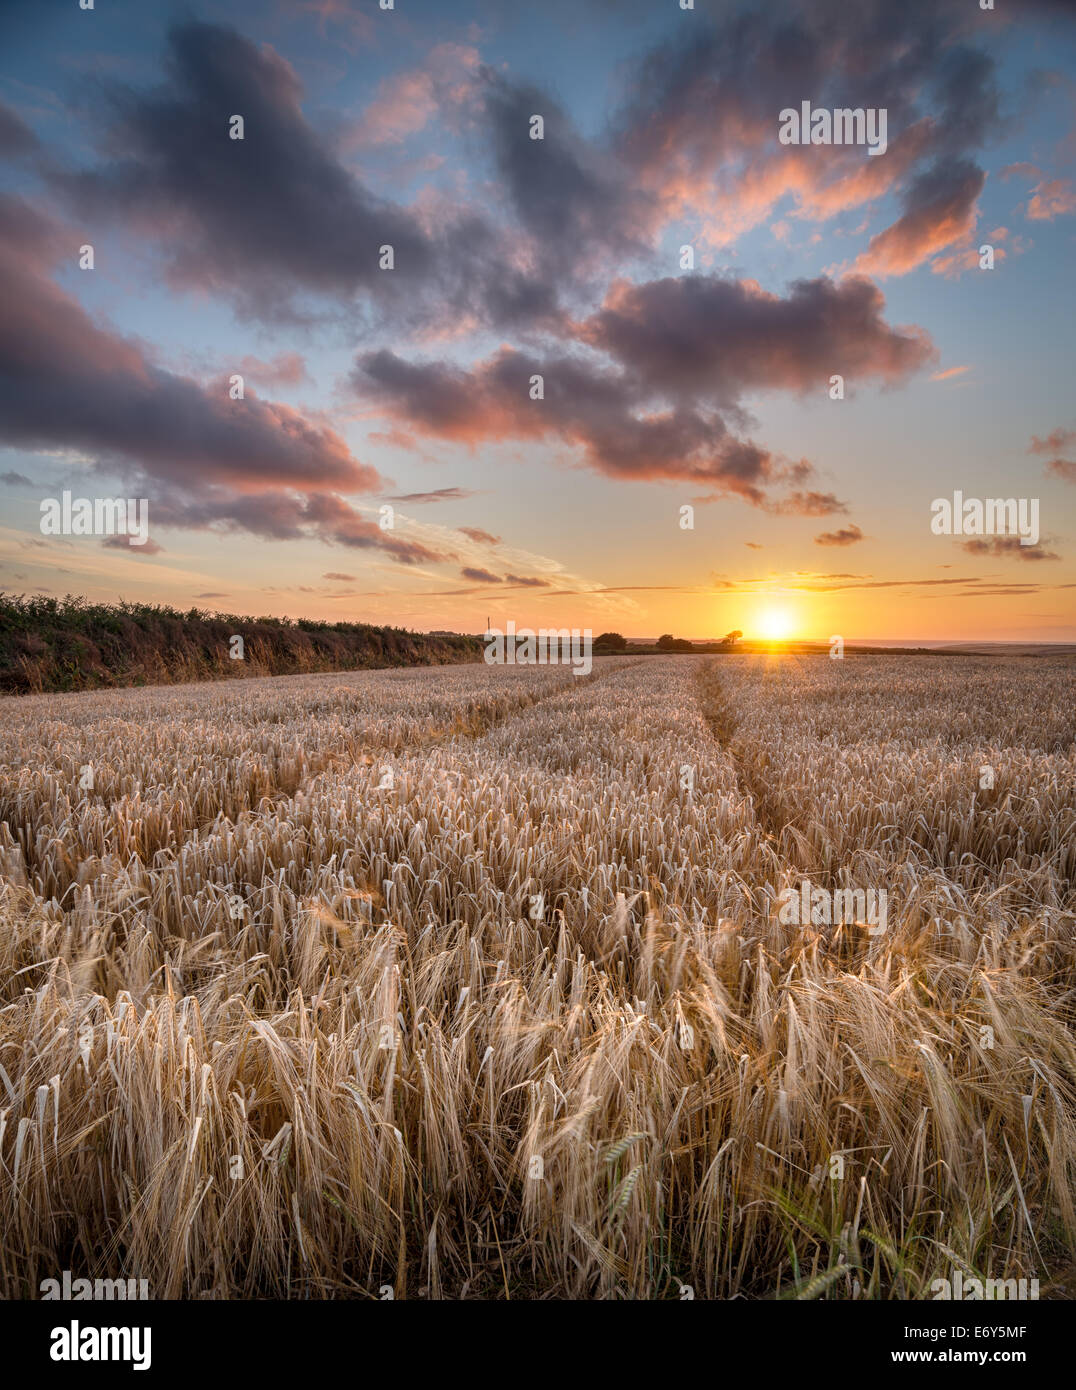 A barley field at sunset near Padstow in Cornwall - Stock Image